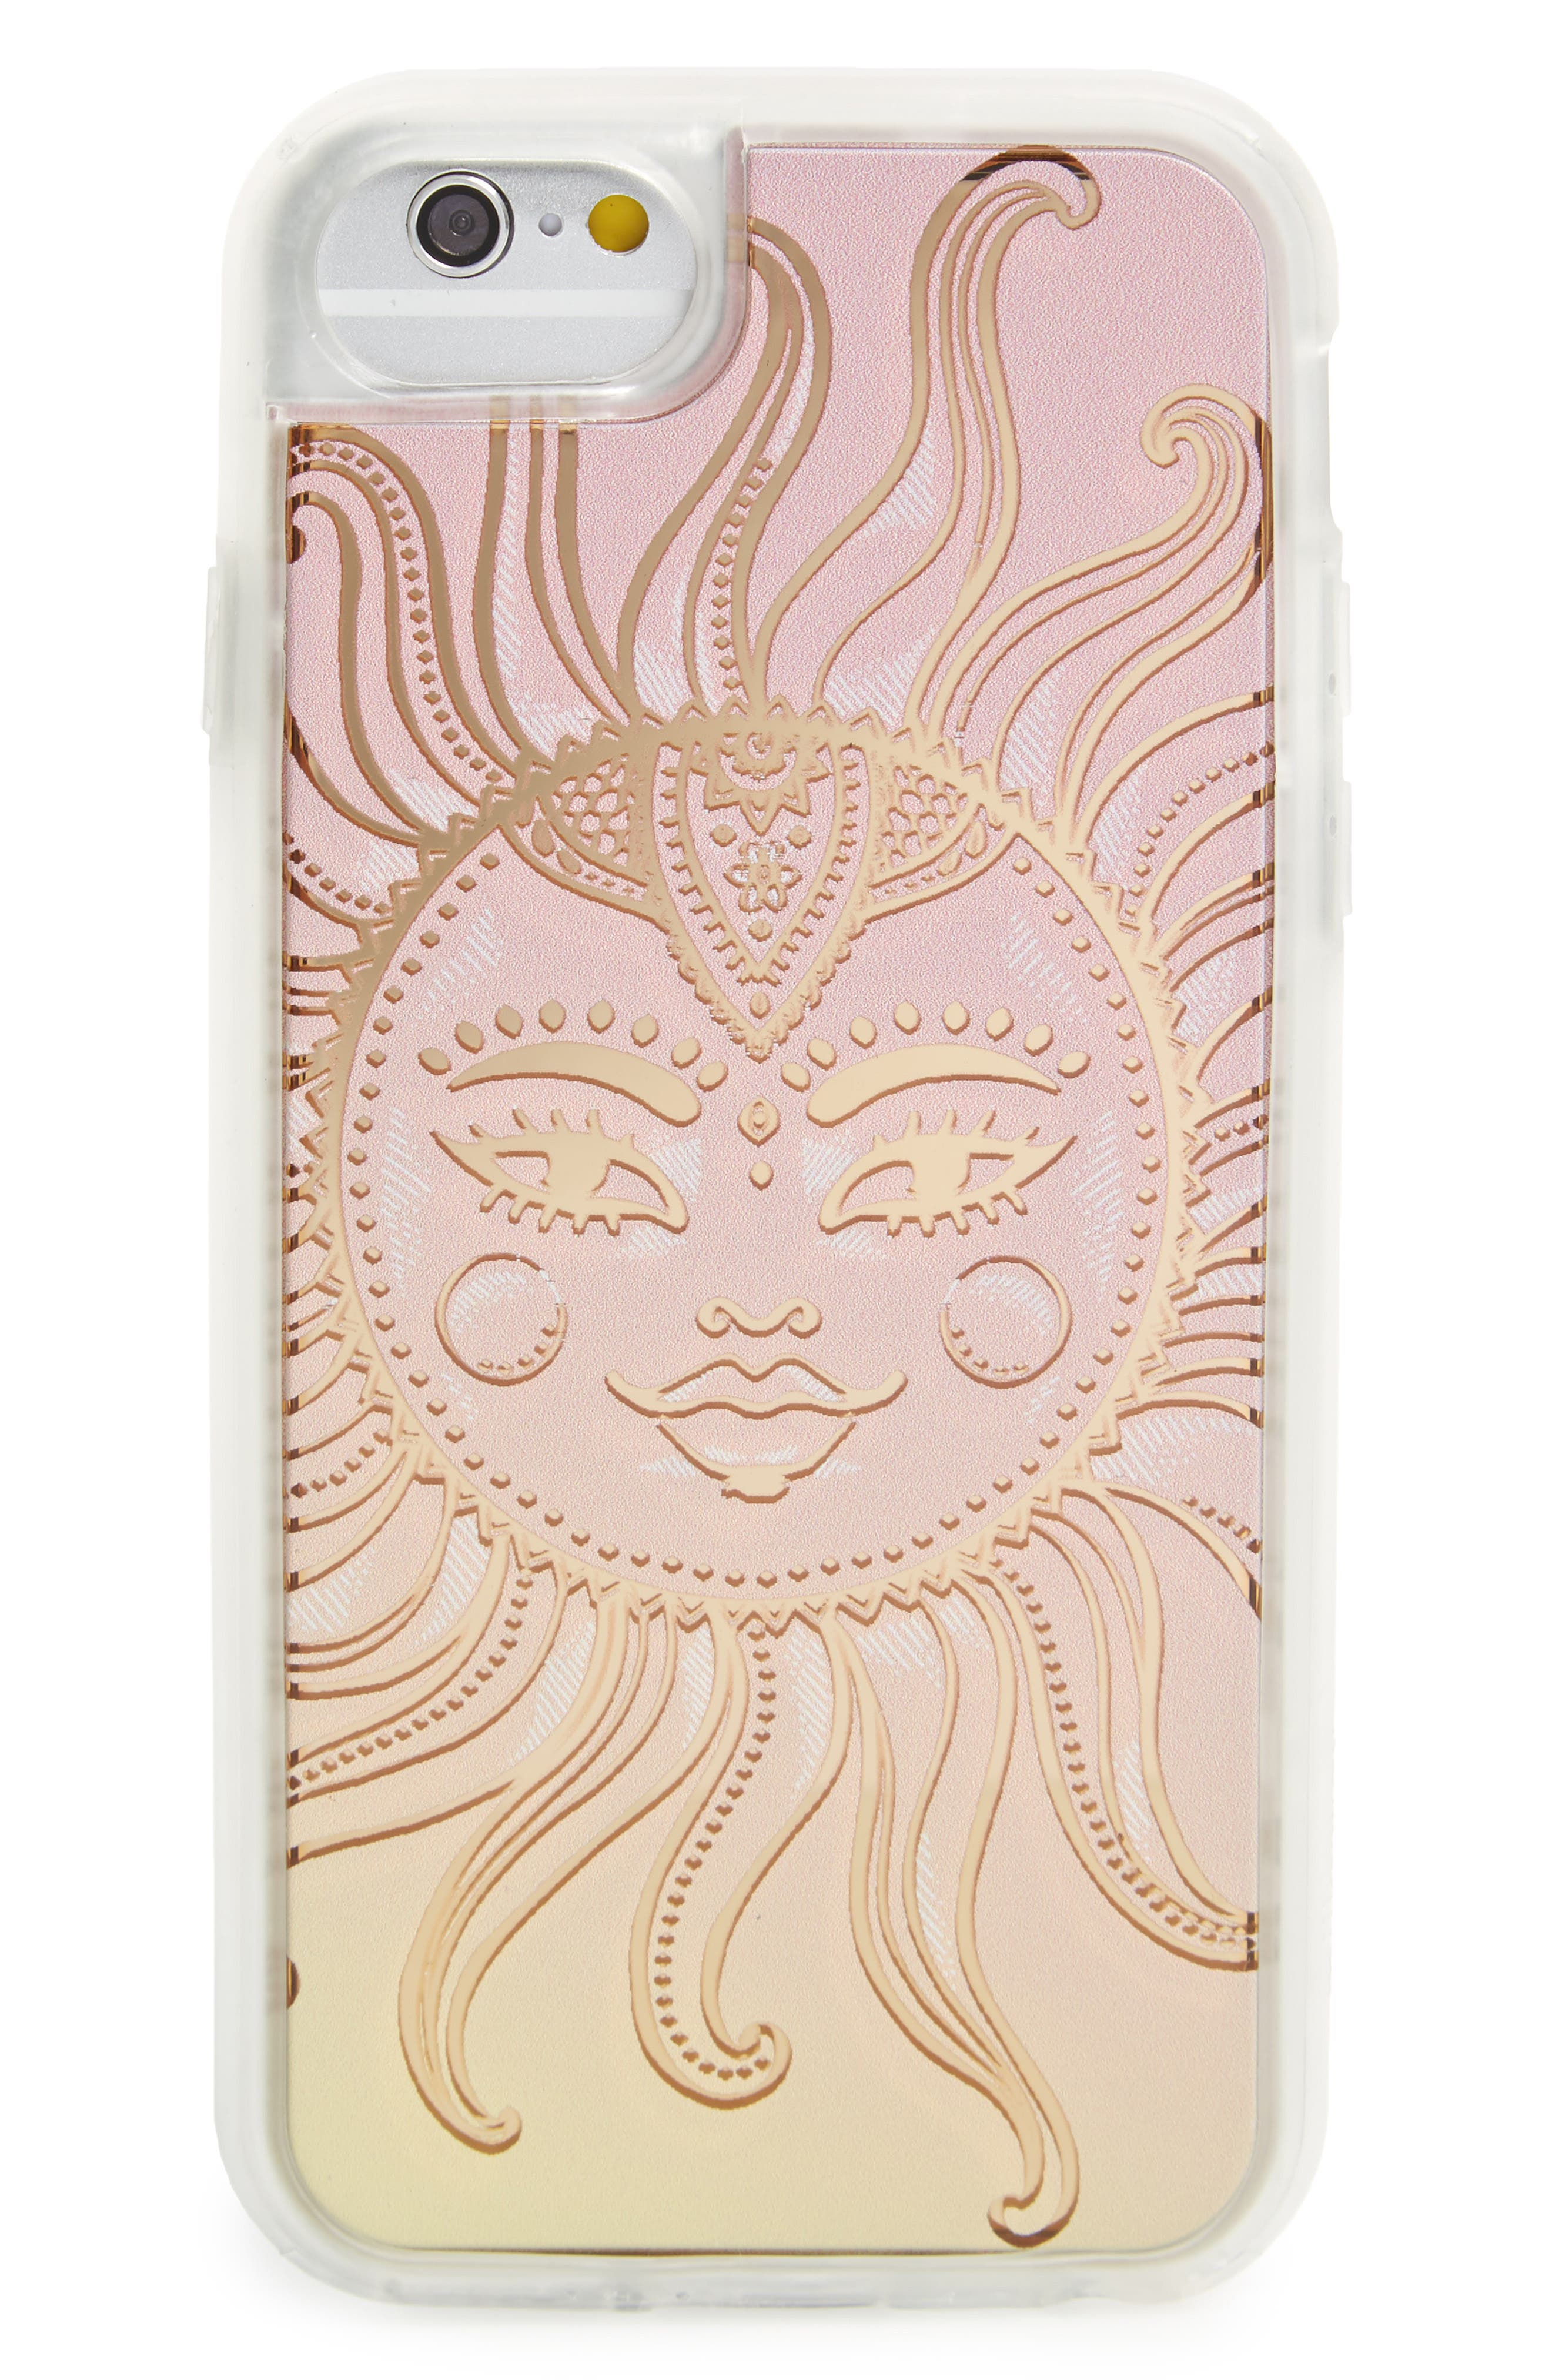 Main Image - MILKYWAY Sublime iPhone 6/6s/7 Case